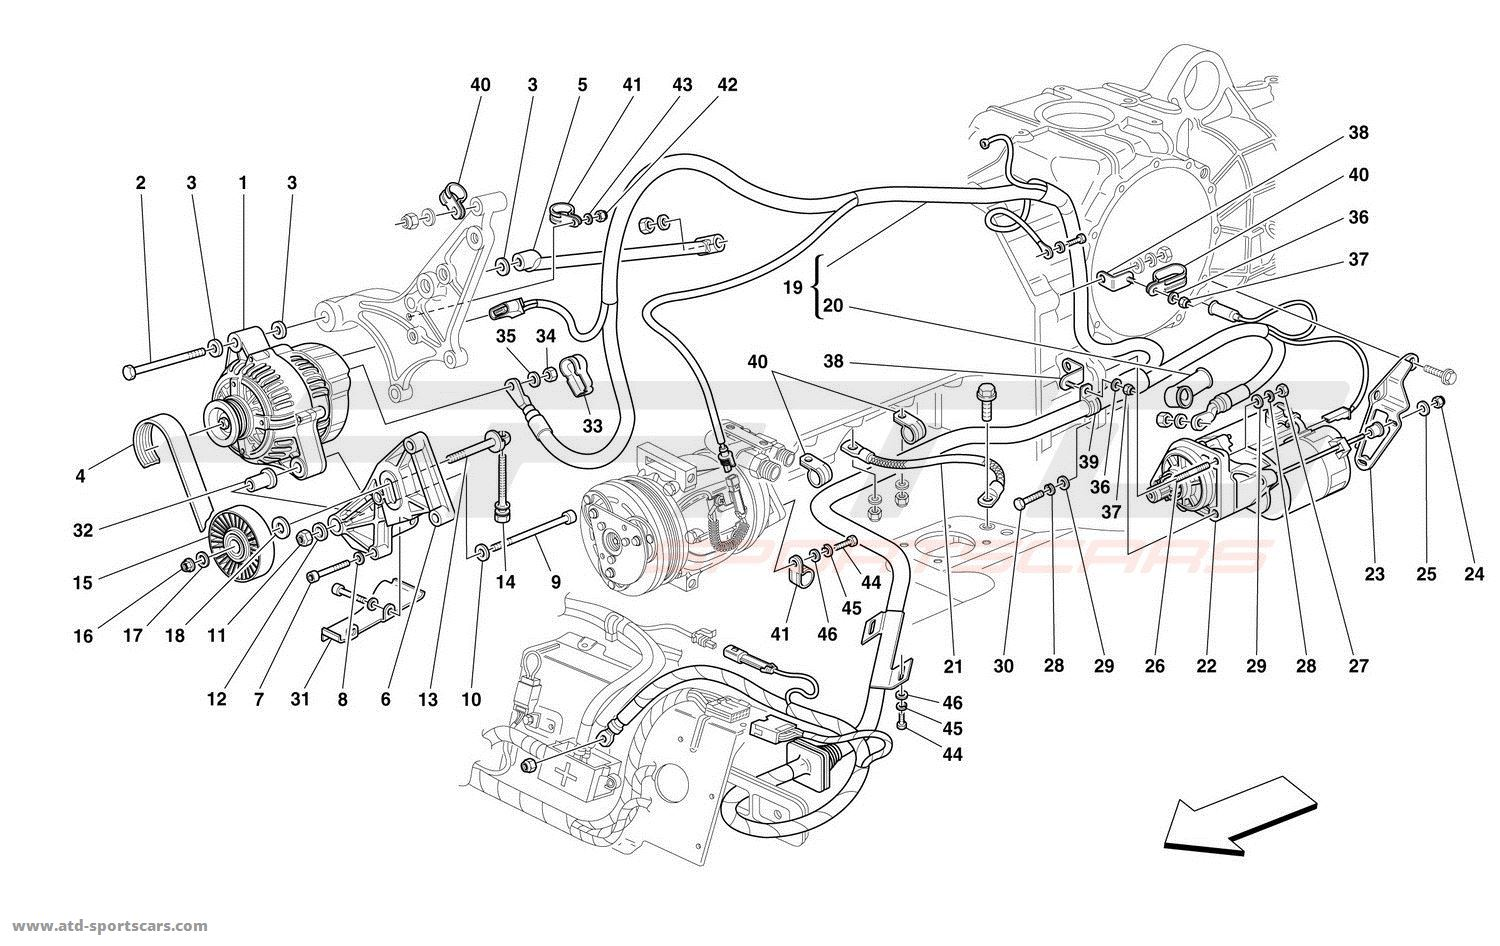 ferrari 360 spider electrical diagram  u2022 wiring diagram for